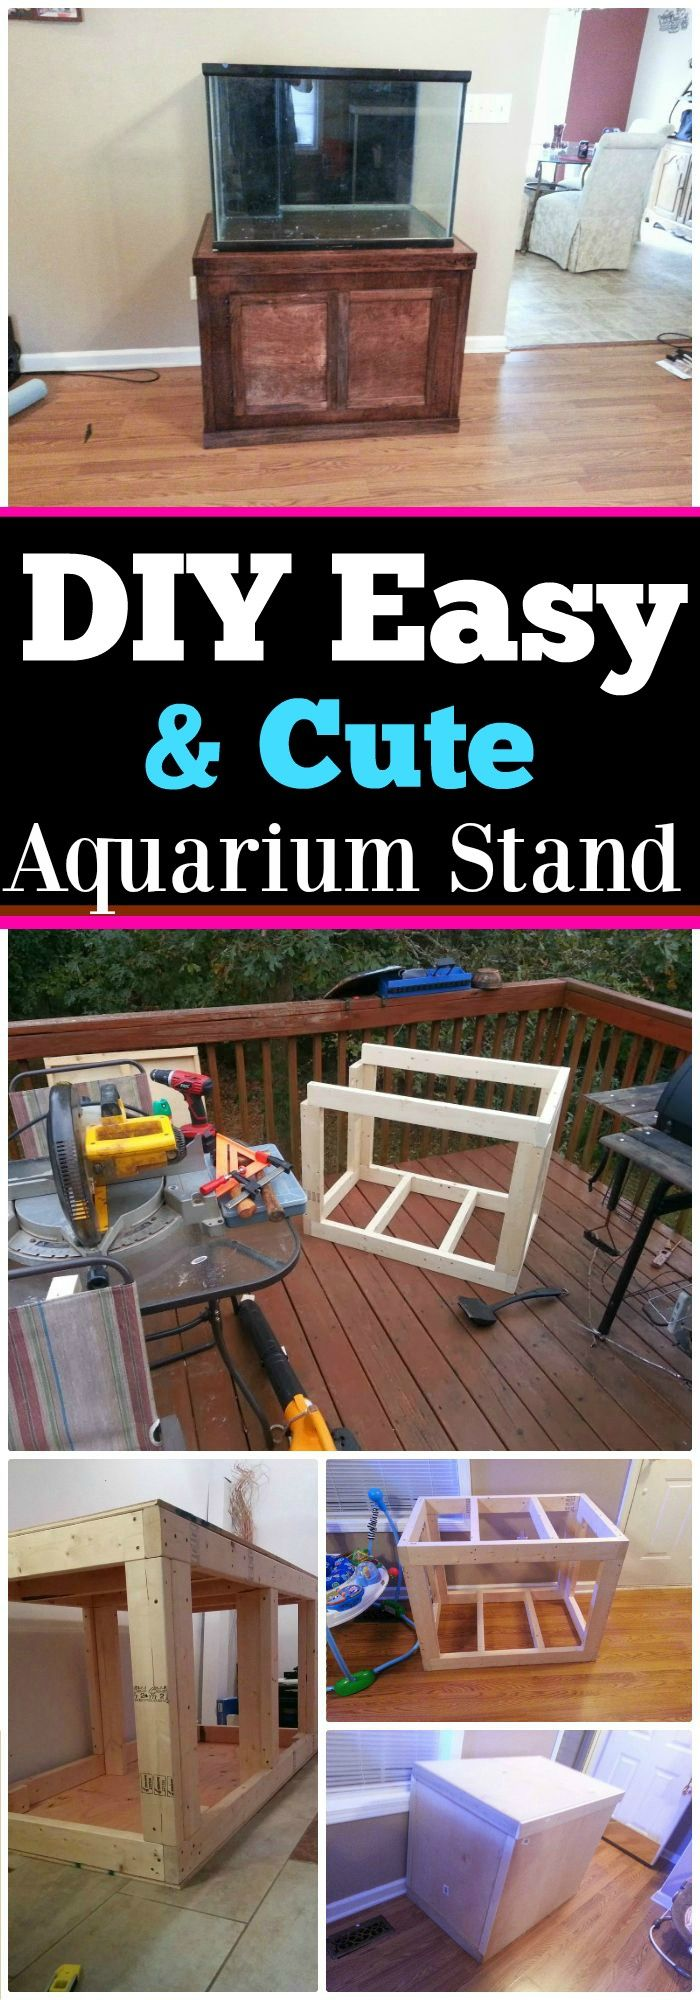 These DIY aquarium stand plans are only for you, some are to make at home, and some are made with repurposed furniture but will serve as the best alternatives!